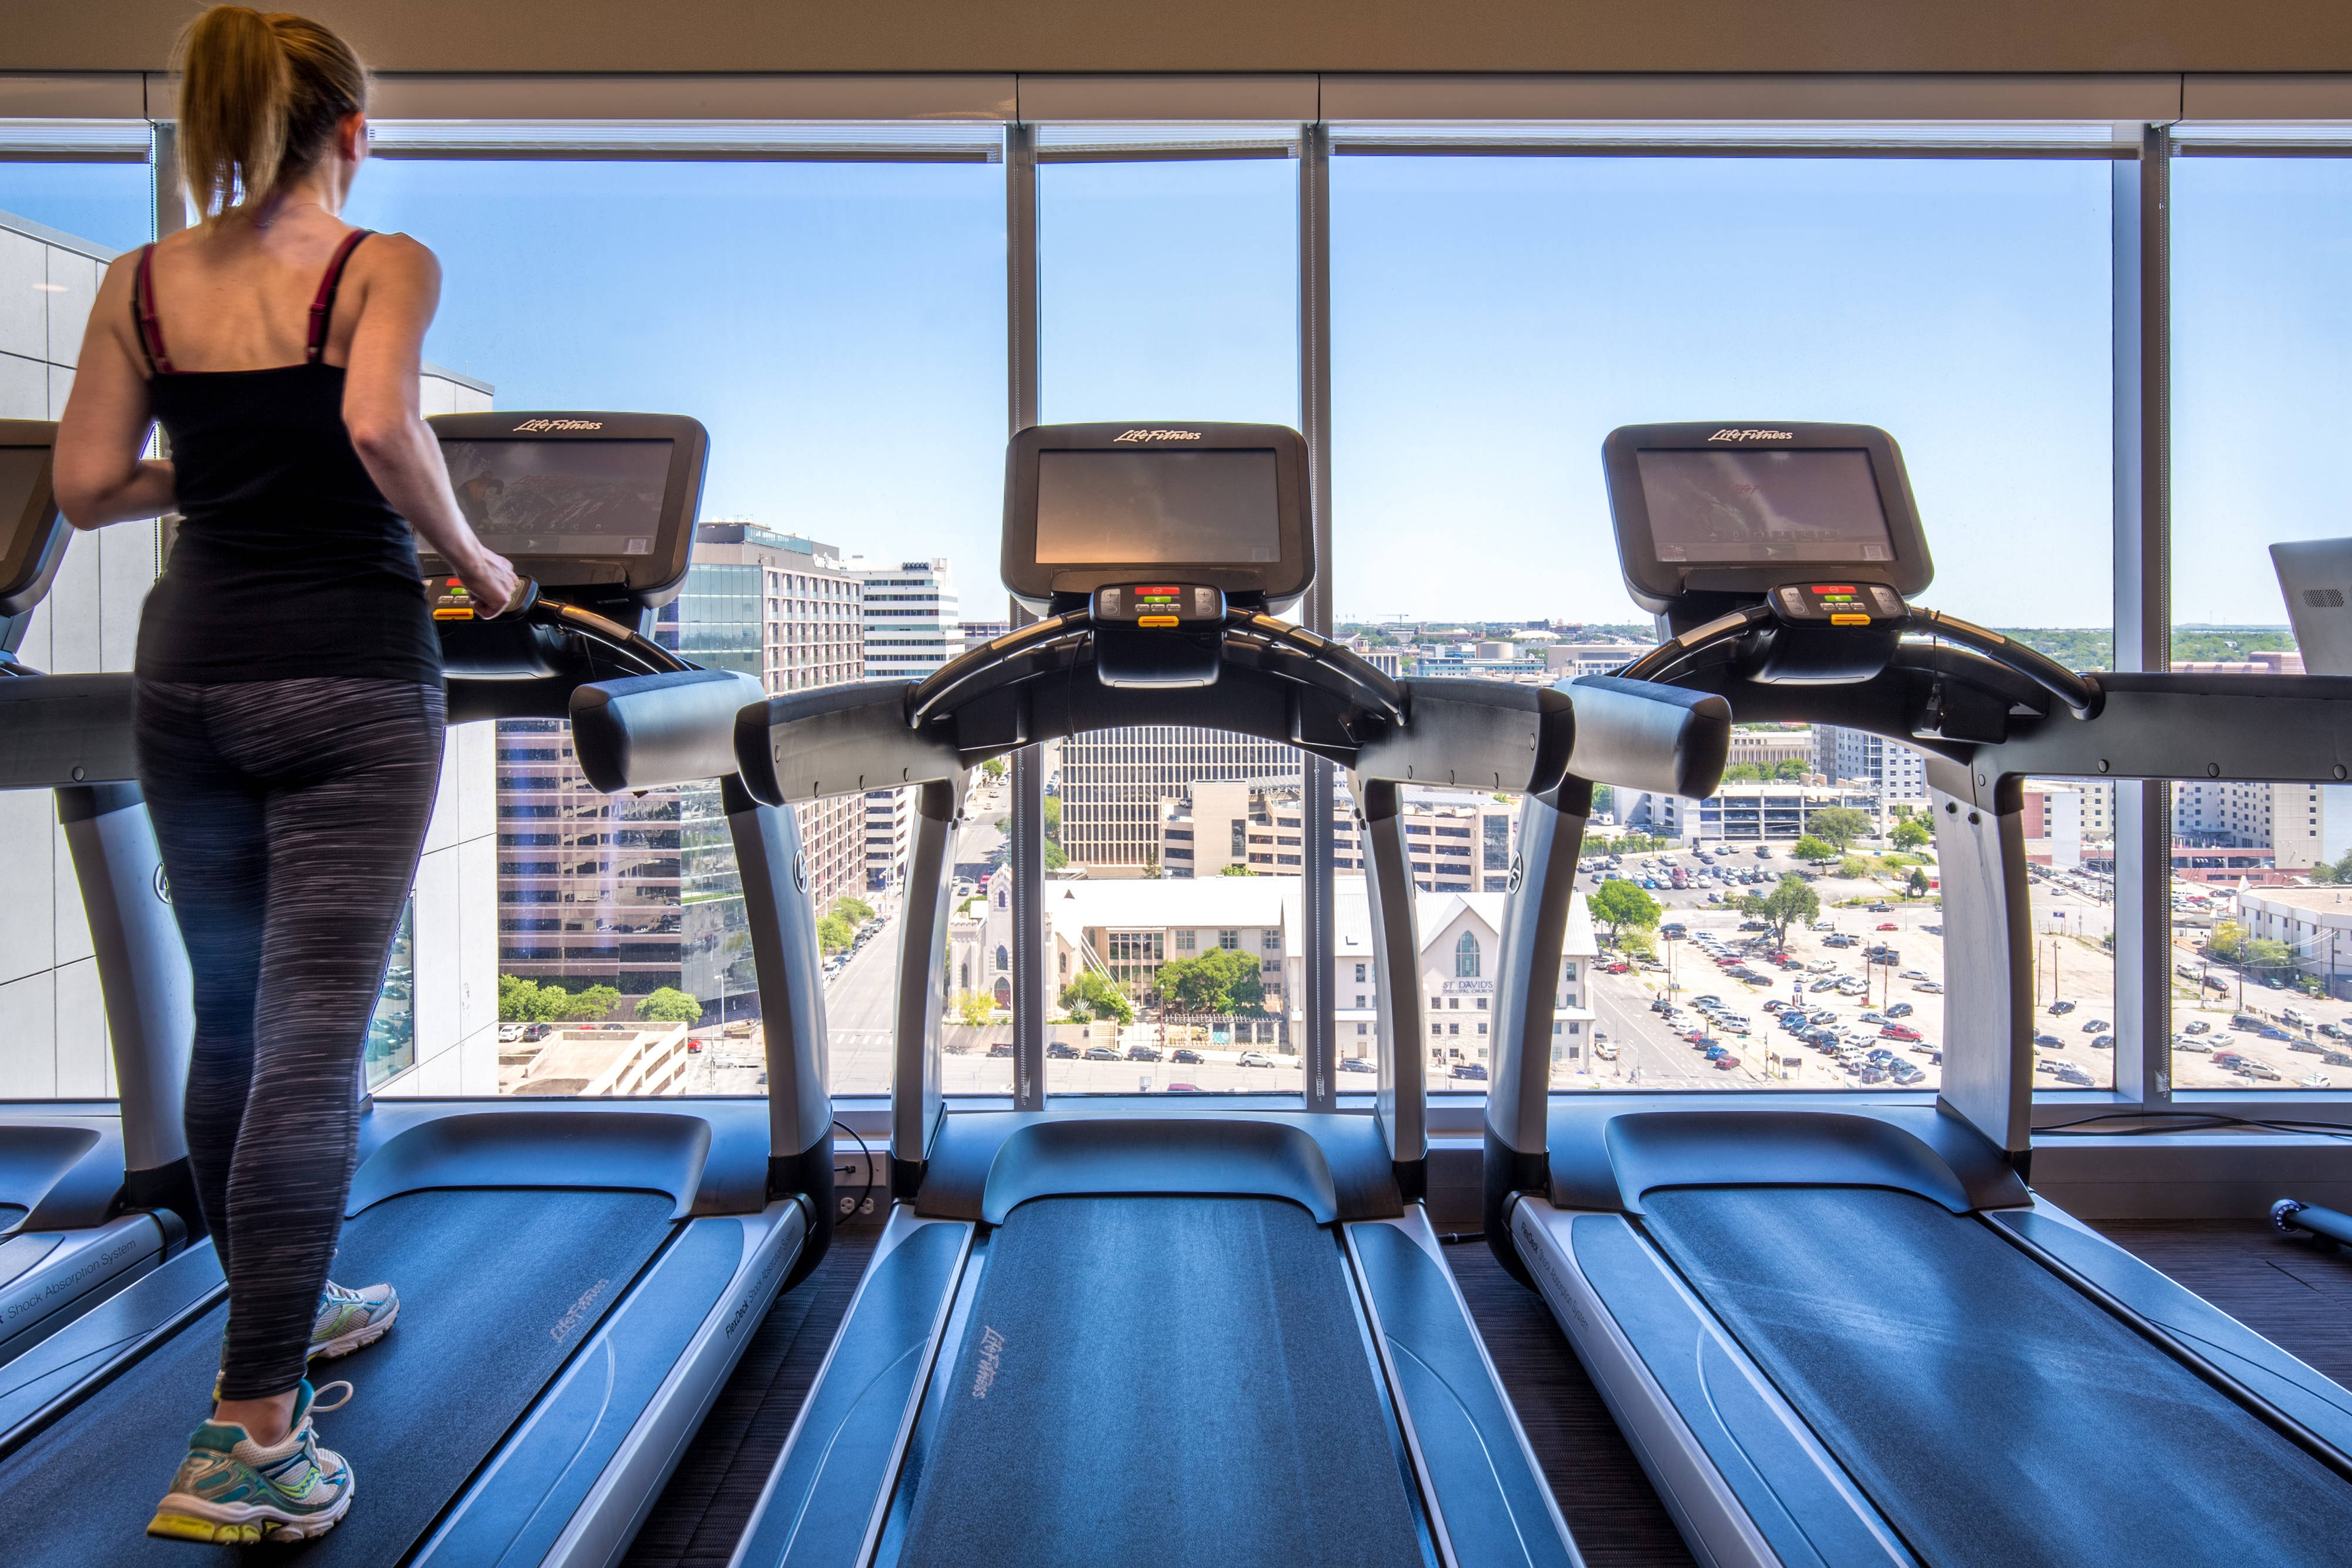 Fitness Center - Cardio Machines